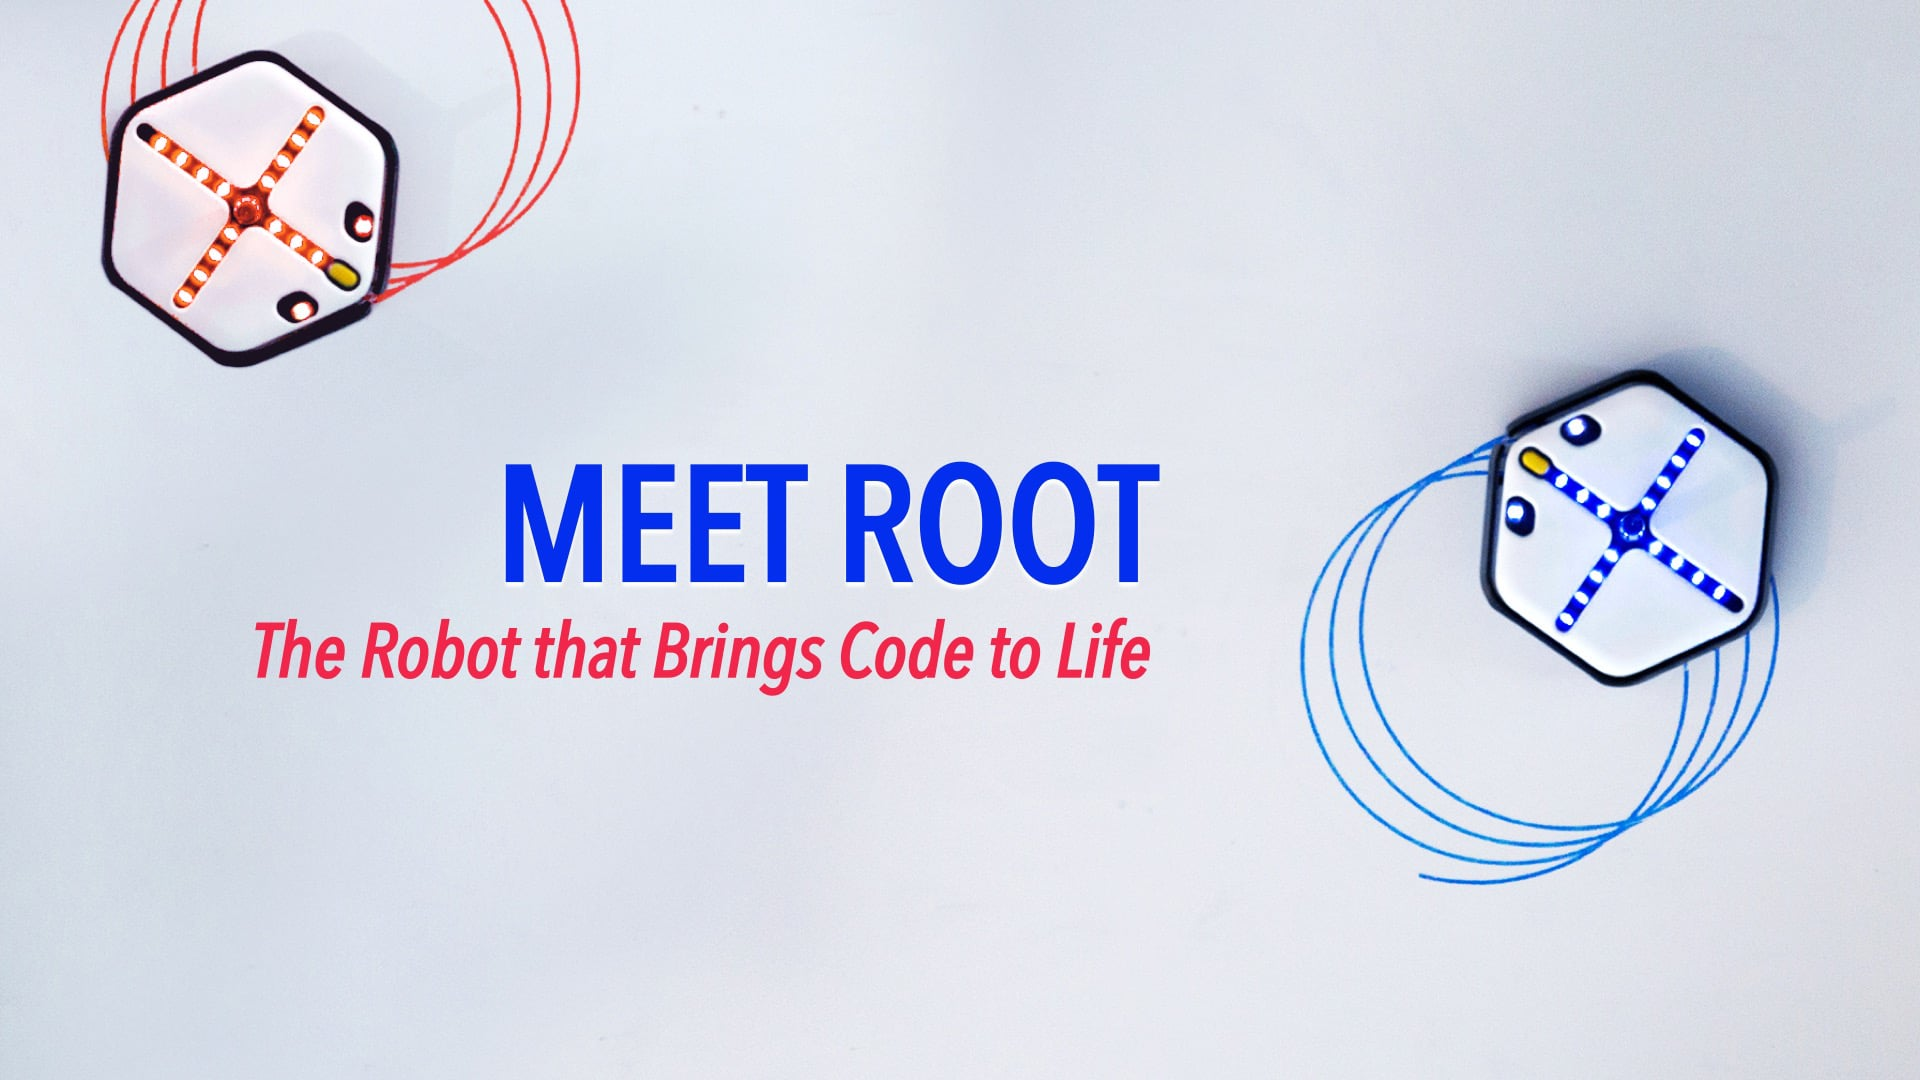 Meet Root: The Robot that Brings Code to Life